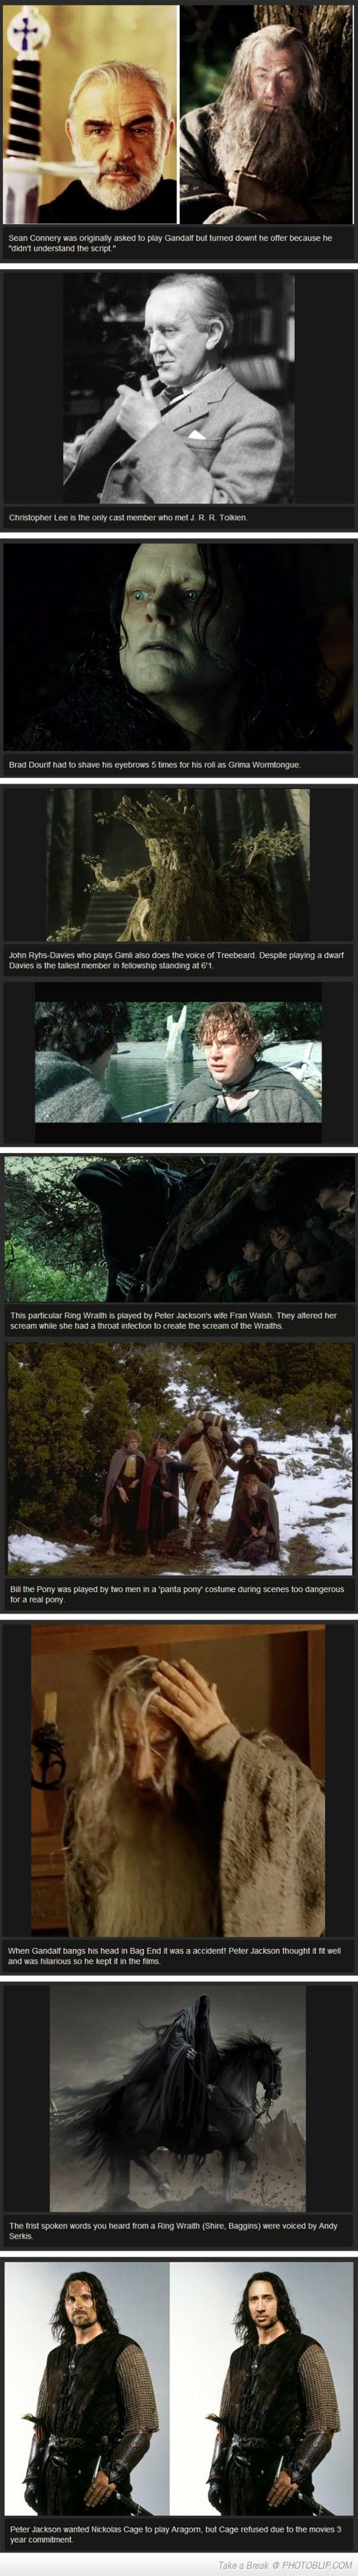 Lord Of The Rings Facts. I can't believe Peter Jackson wanted Nicolas Cage as Aragorn!! that would have been horrible.